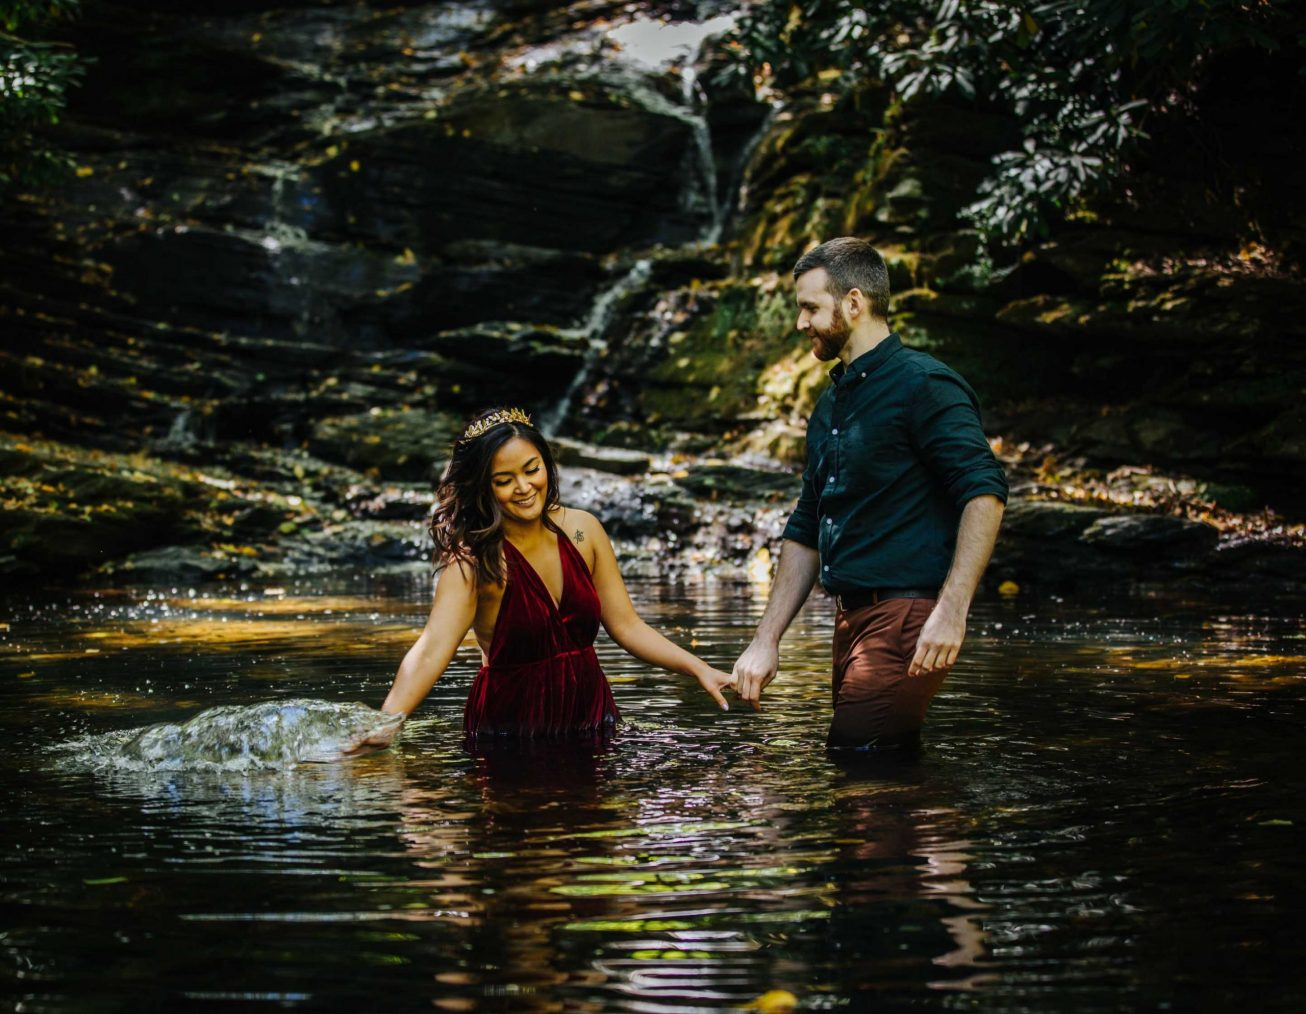 Engagement photo ideas Pennsylvania wedding photographer couple in water